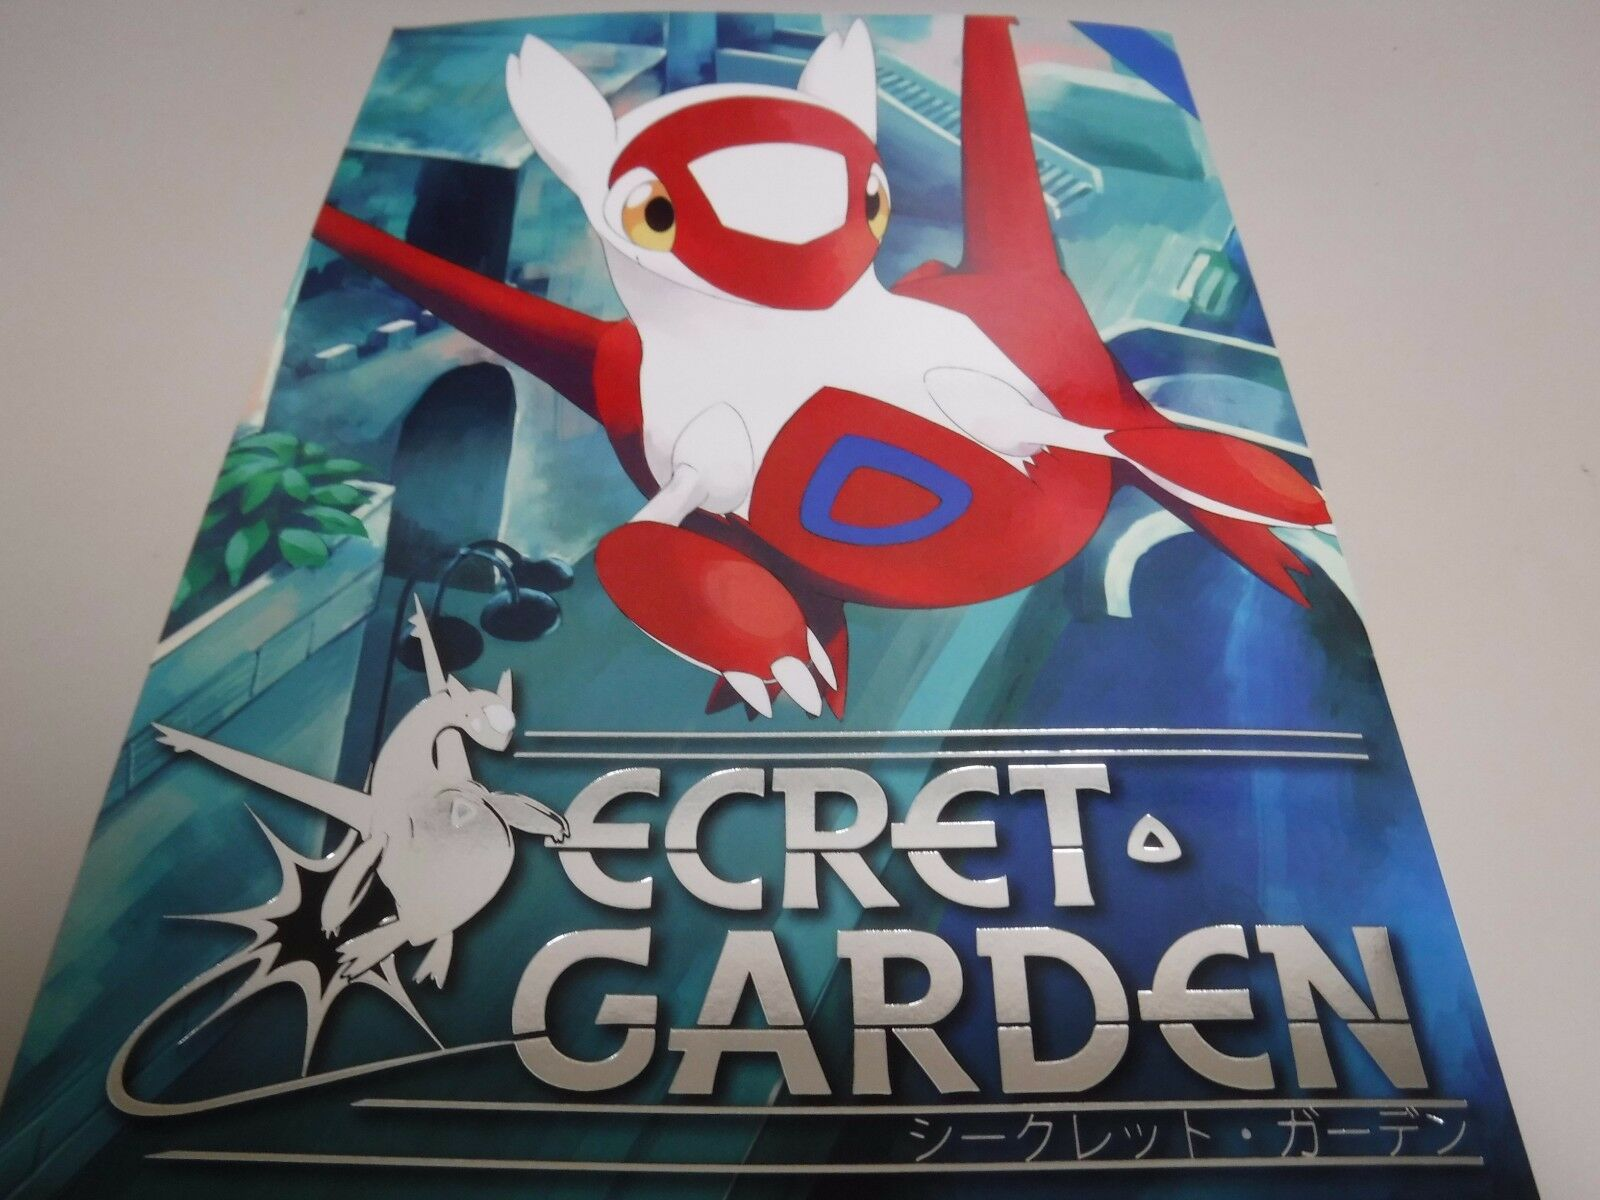 Doujinshi Pokemon Latias X Latios (B5 222pages) Secret Garden Shinnagata Furry